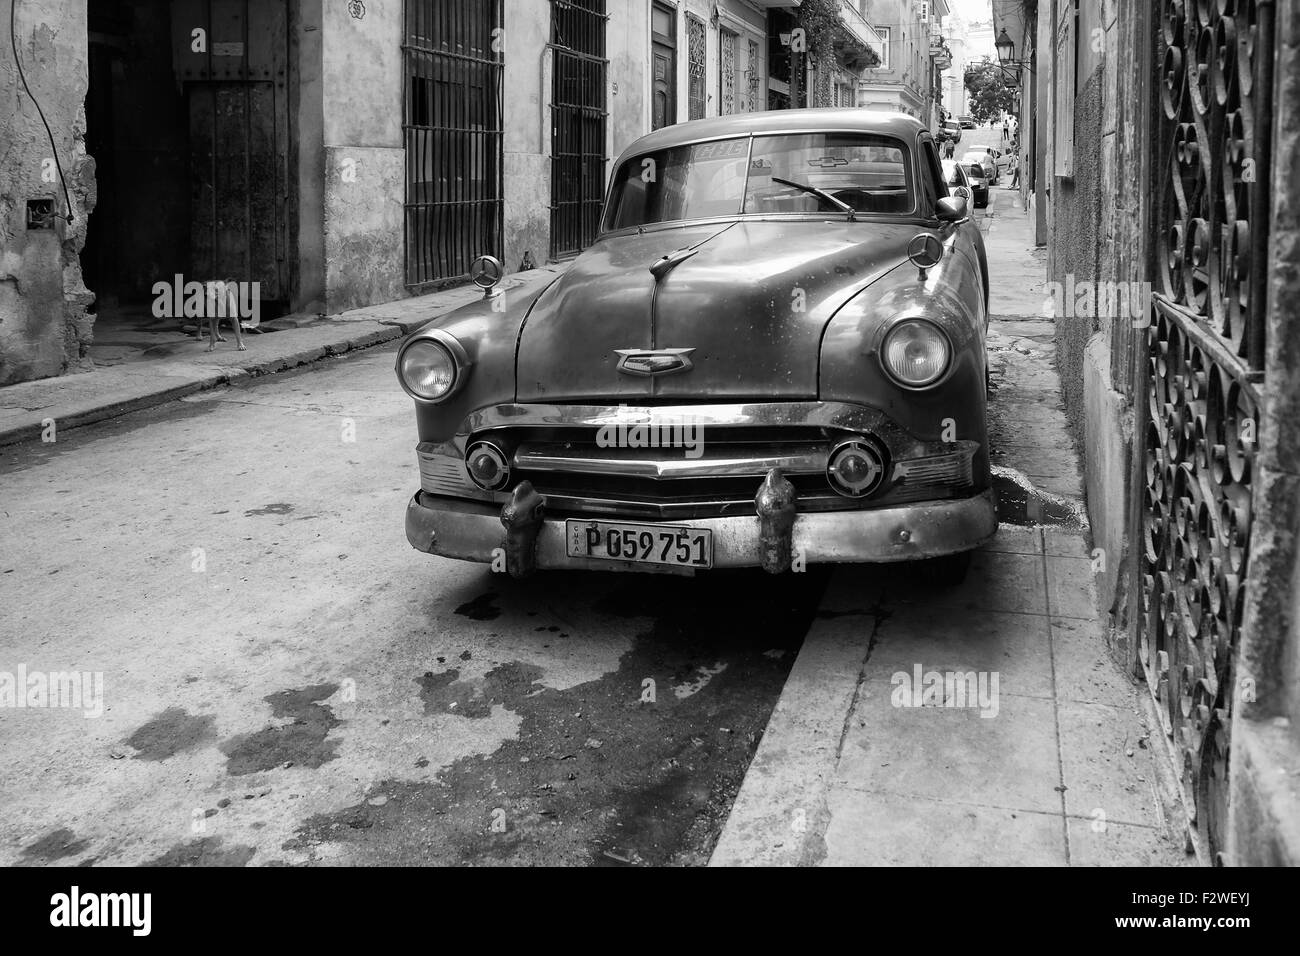 A parked Cuban car and dog stood in the background, urban Havana. - Stock Image